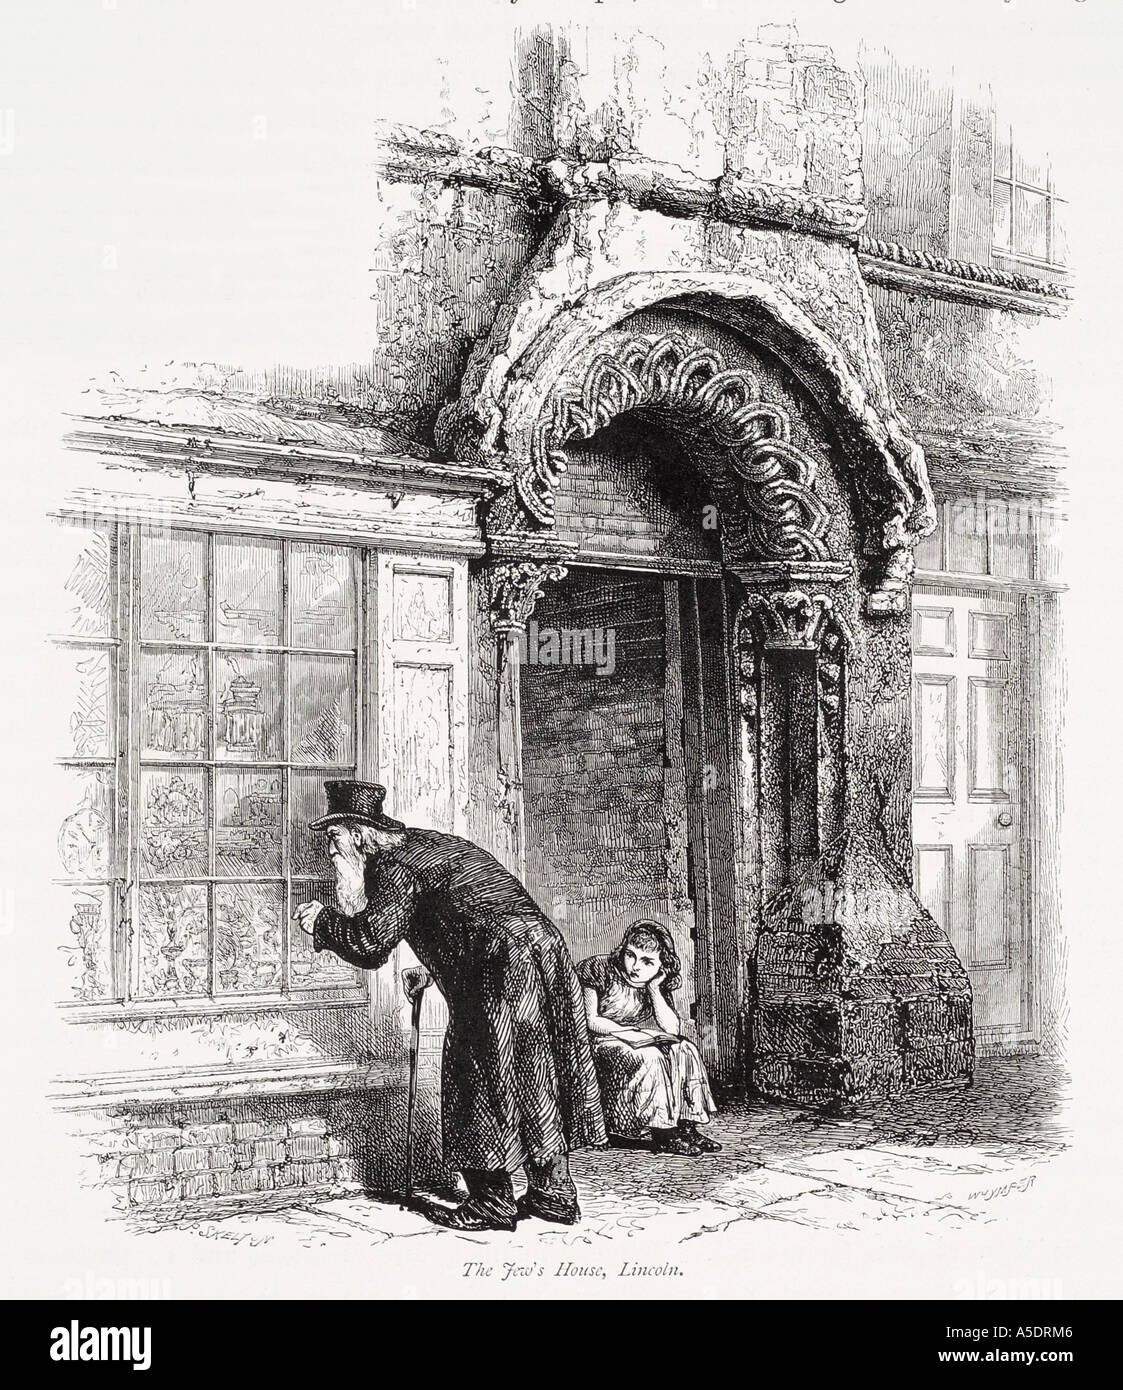 Jew House Lincoln Lincolnshire Old Man Look Window Shop Doorway Entrance Stone Medieval England English UK United Kingdom GB Gre